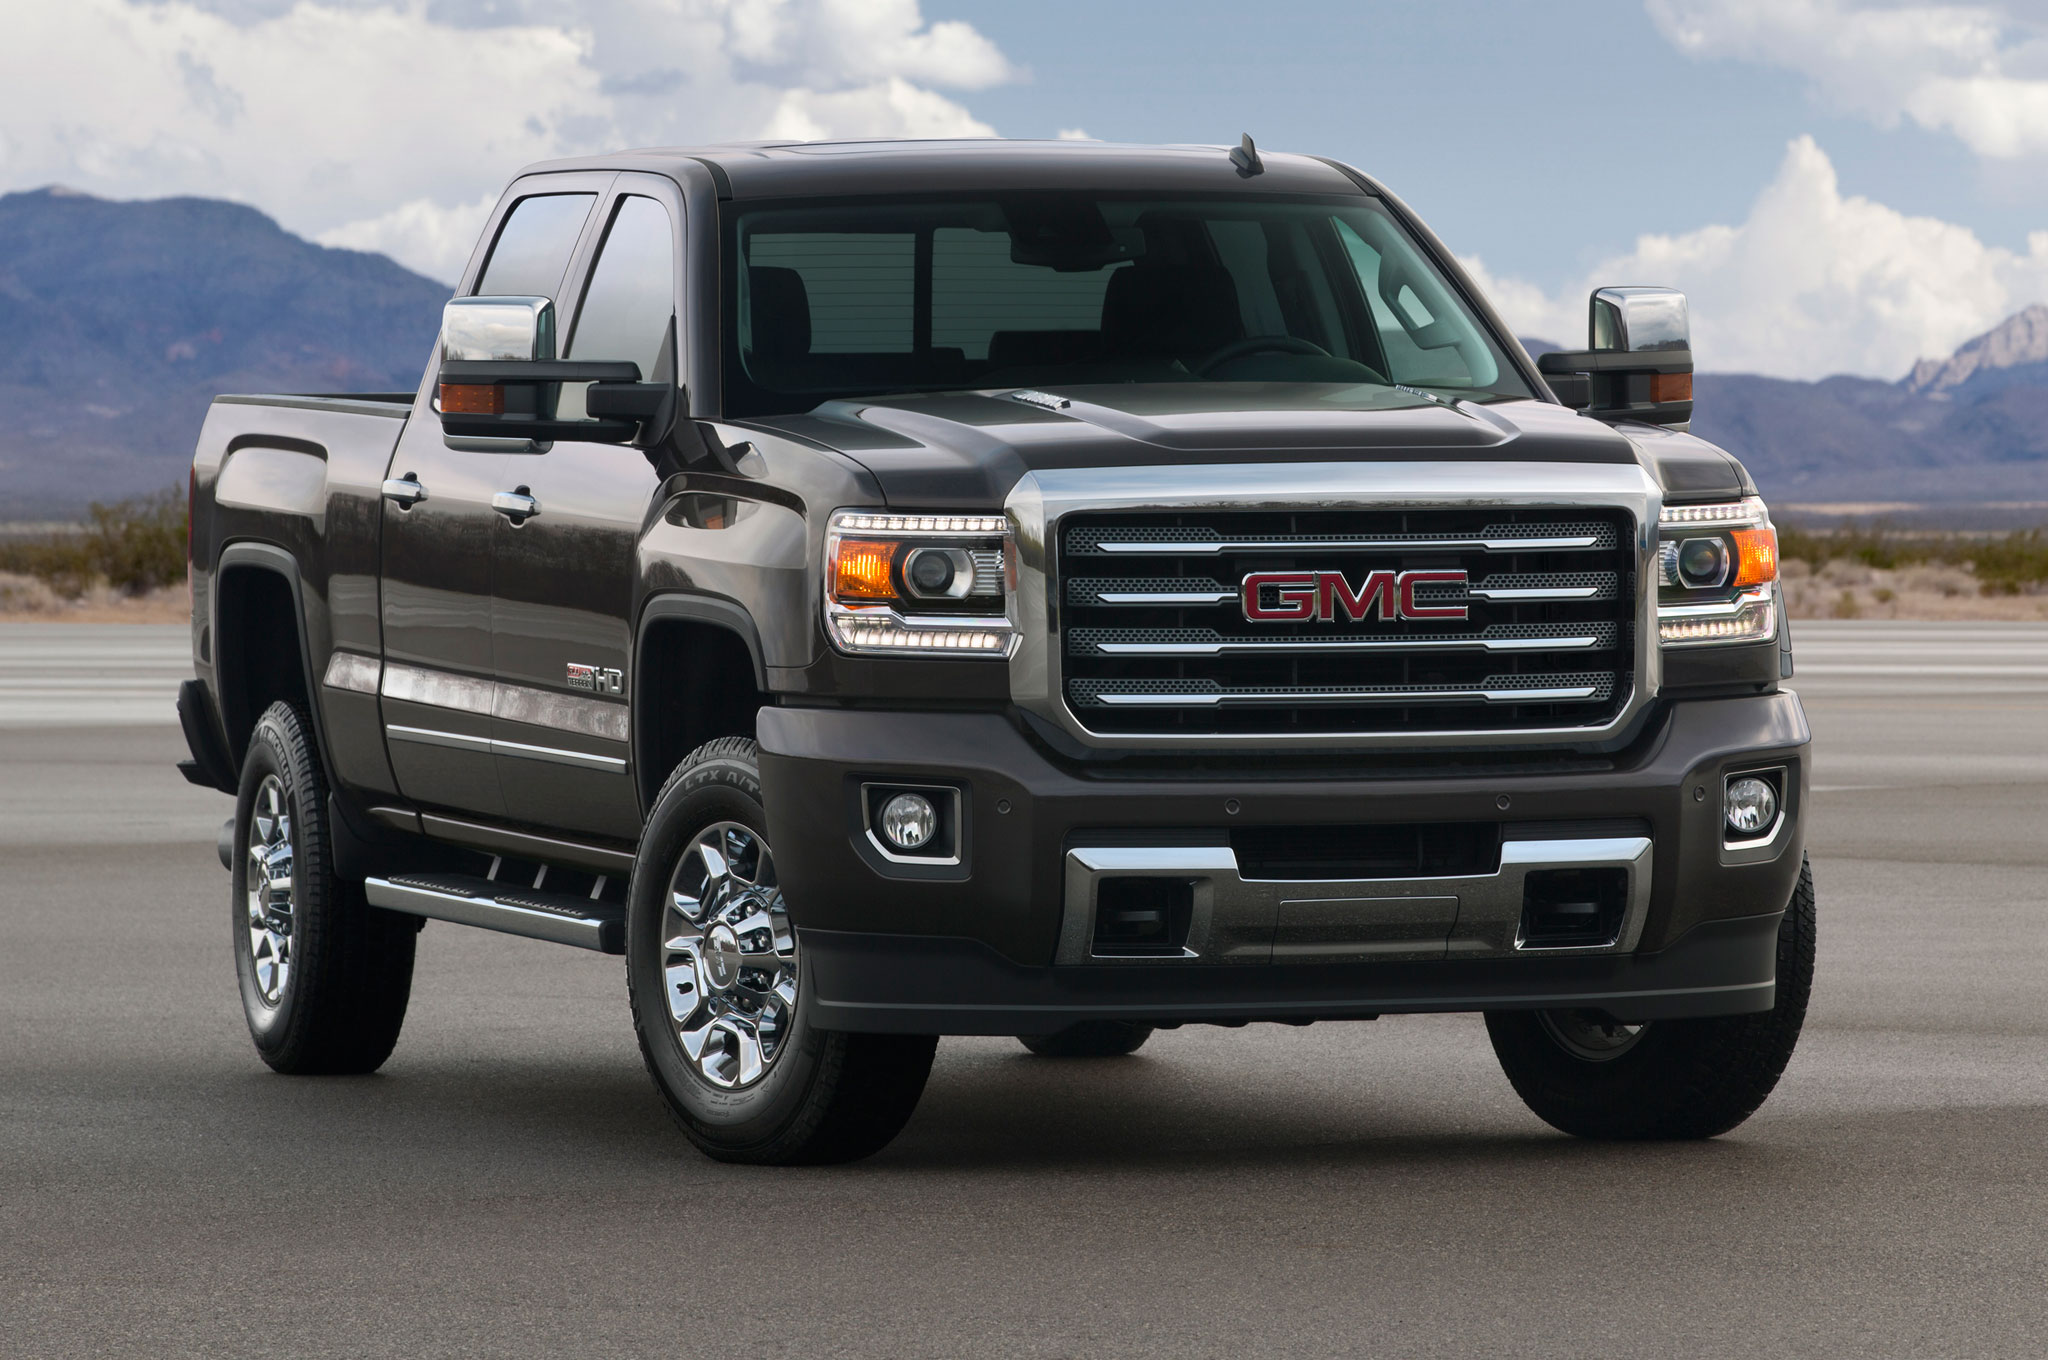 2015 GMC Sierra HD All Terrain Front Side View2